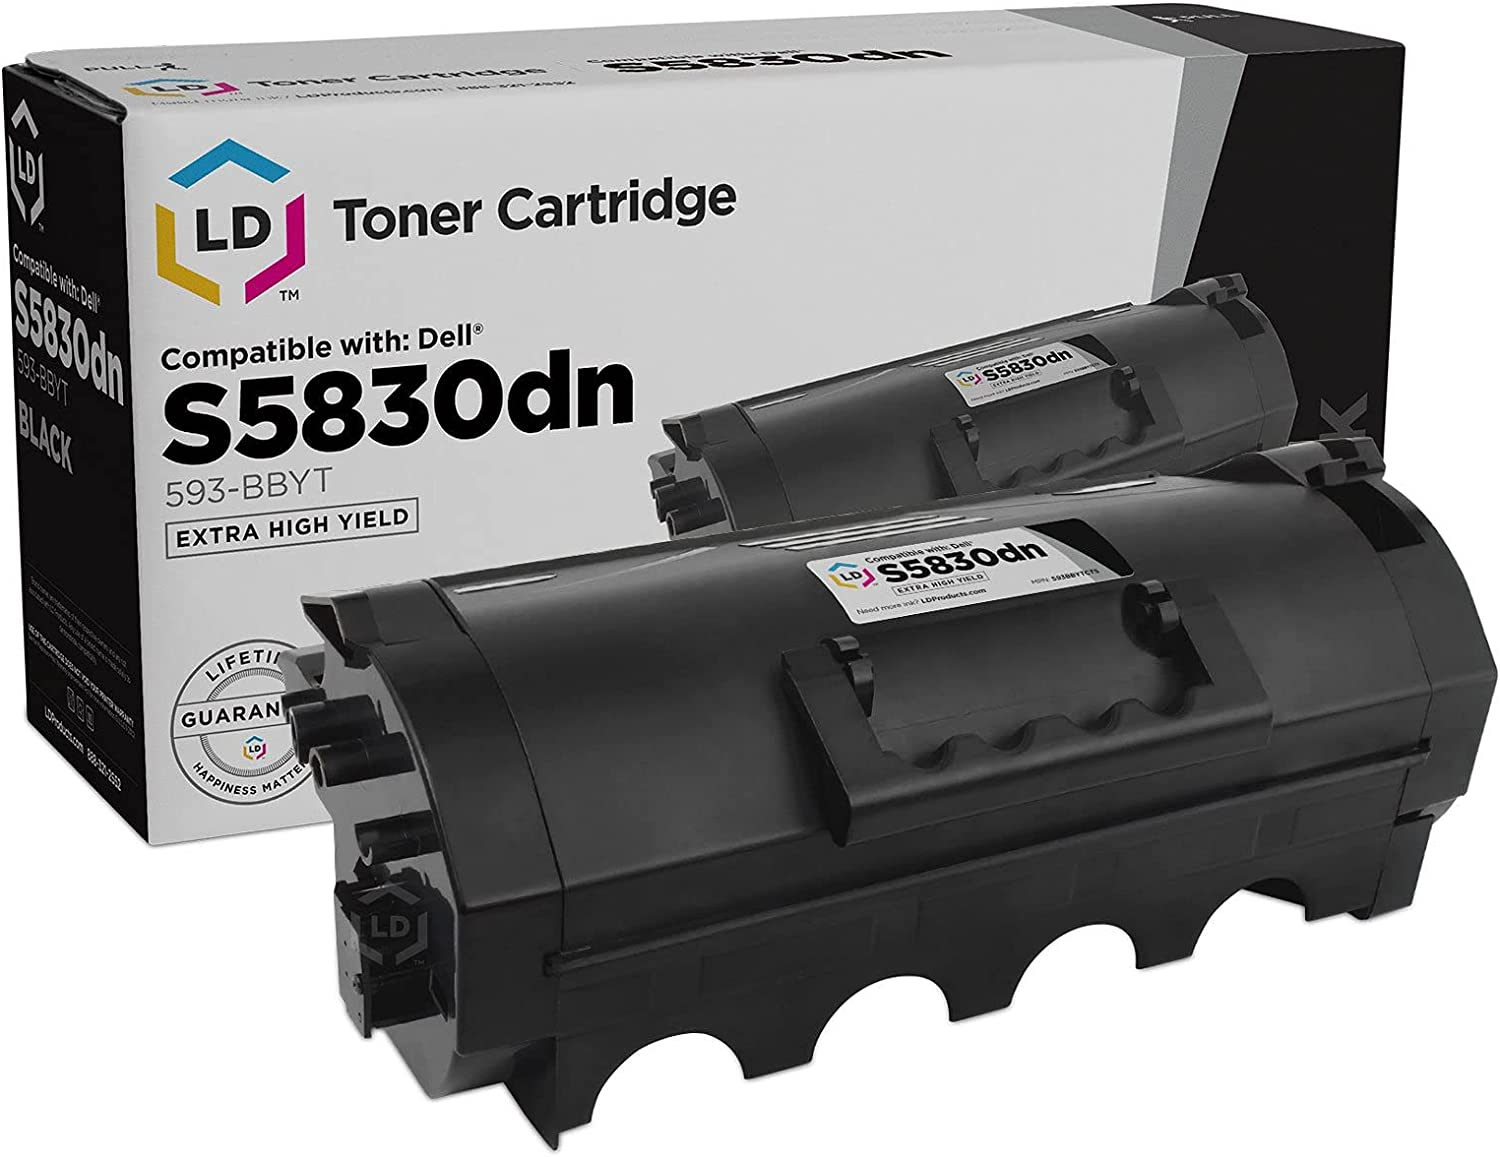 LD Compatible Toner Cartridge Replacement for Dell Laser S5830dn 593-BBYT Extra High Yield (Black)